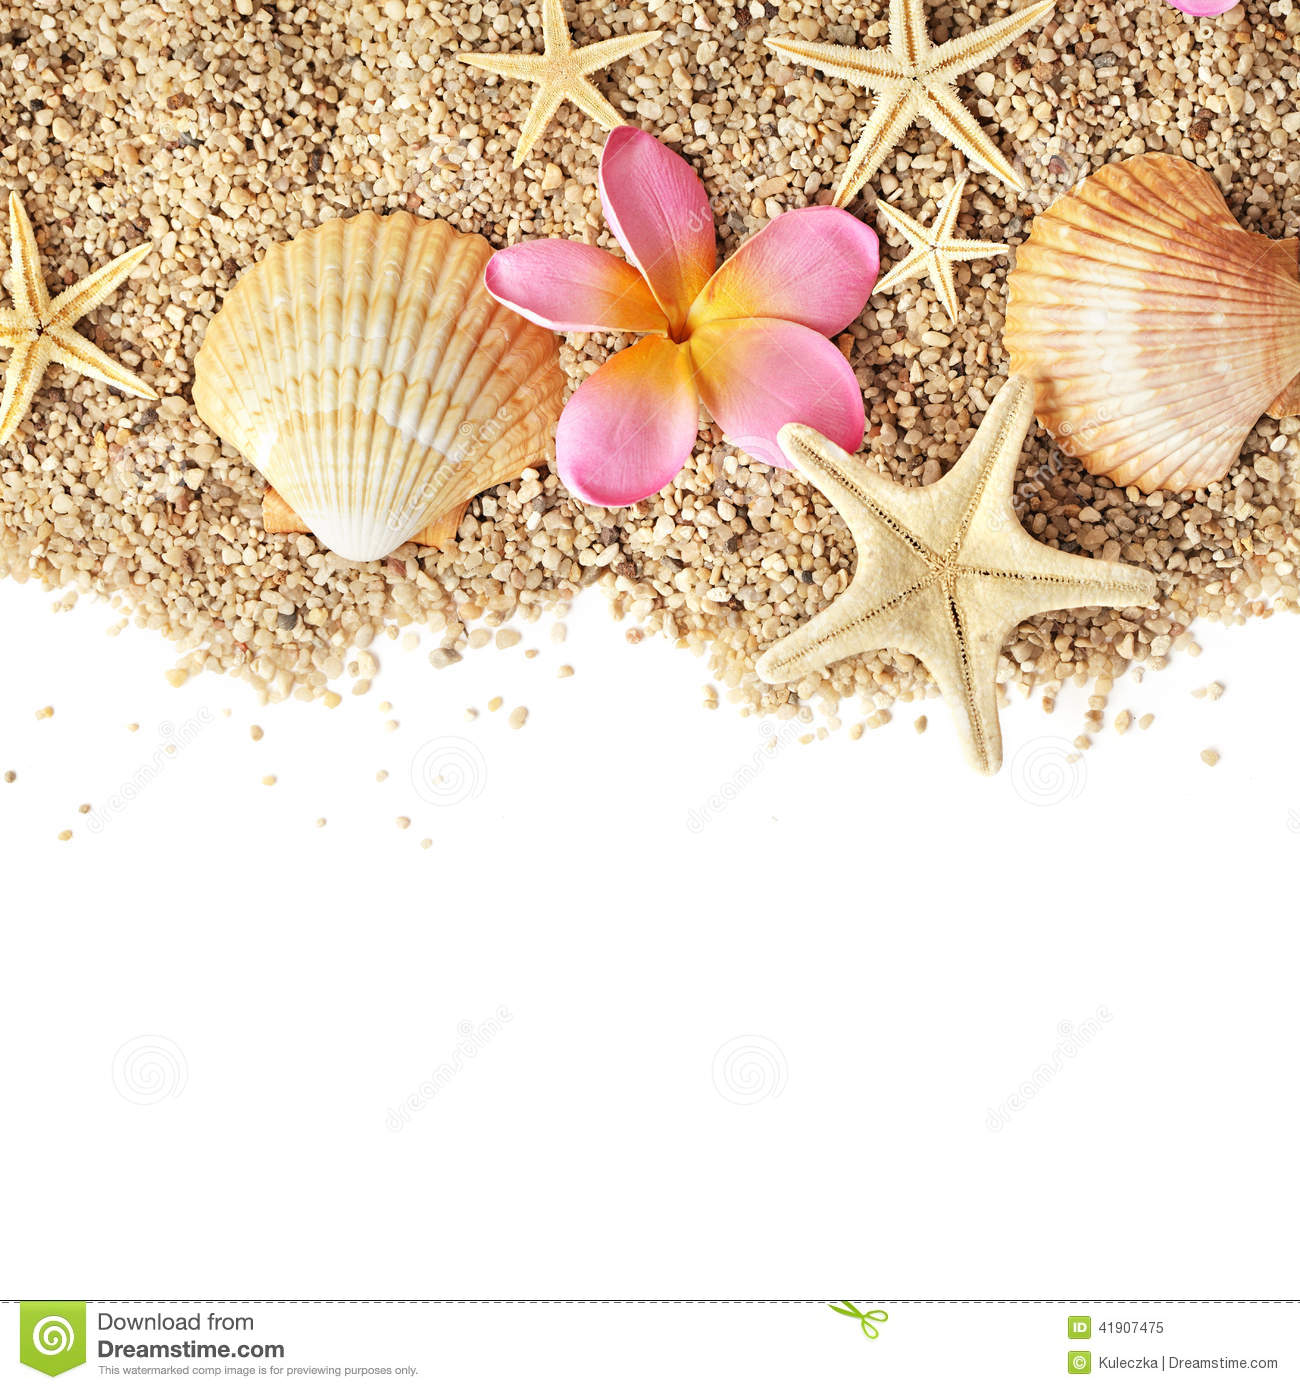 Seashells border stock image. Image of isolated, white ...